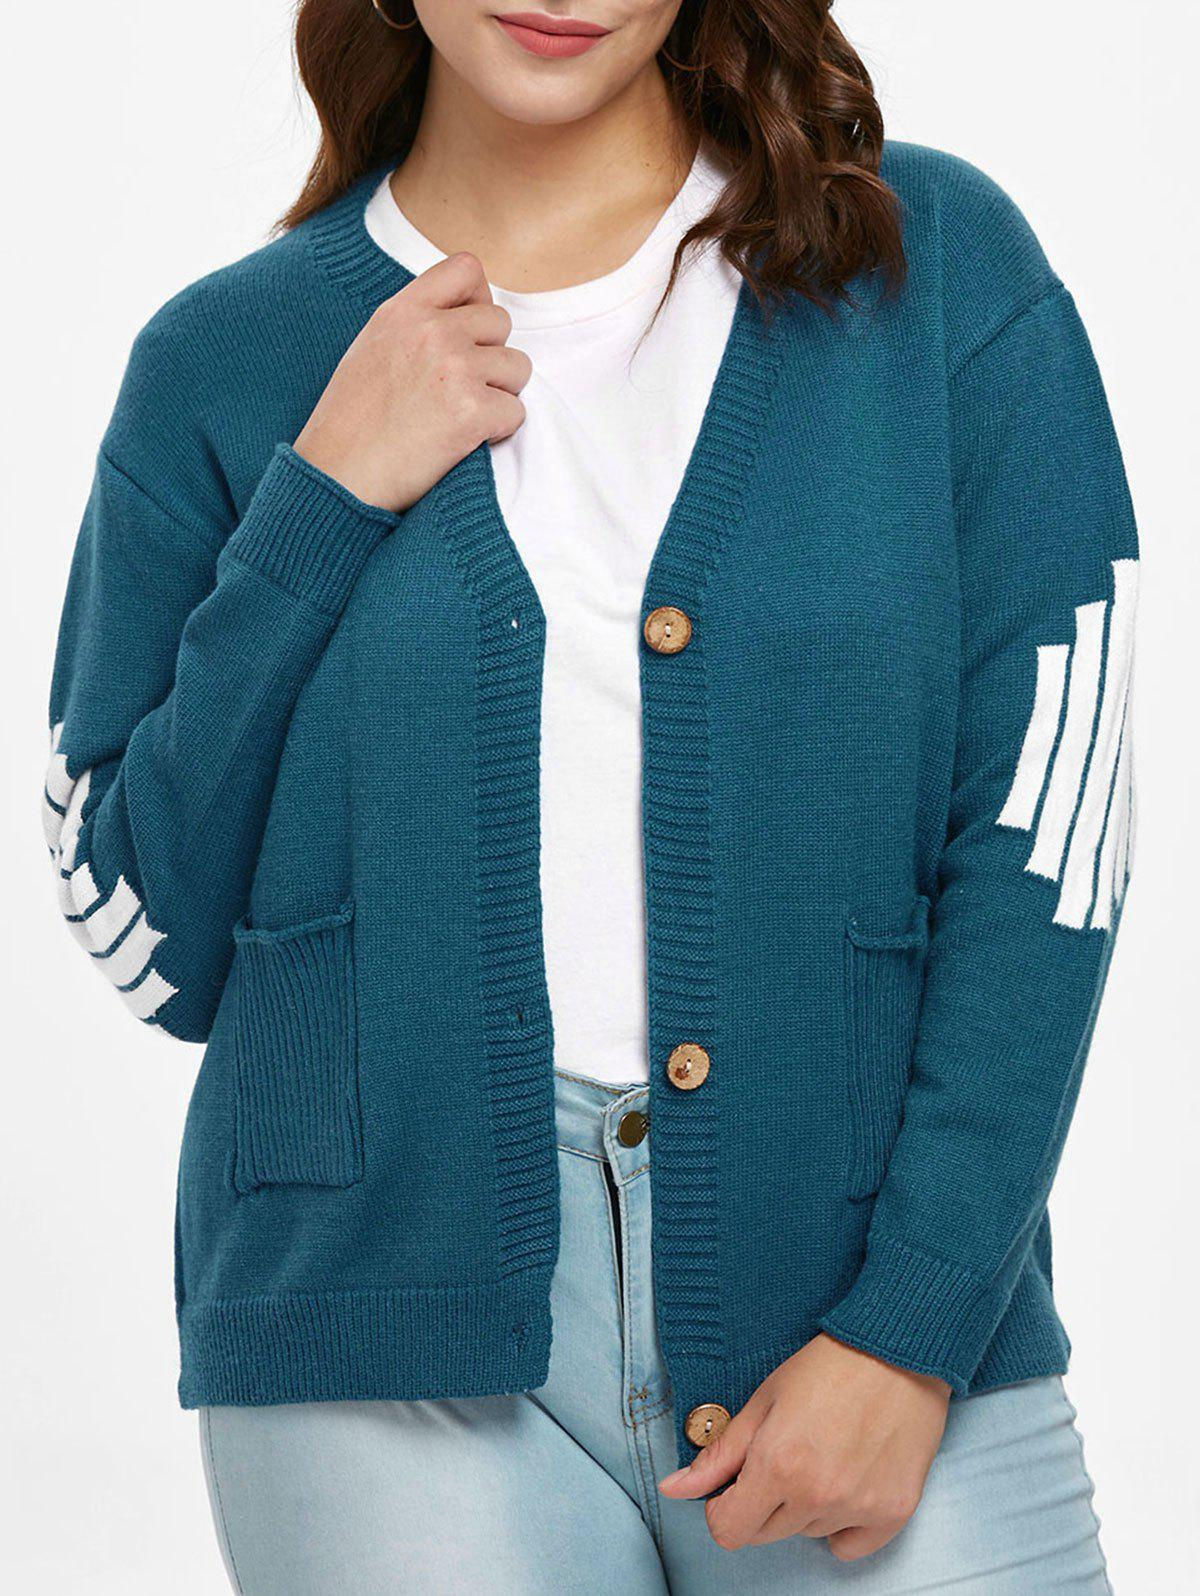 Plus Size Buttoned Sweater Cardigan - PEACOCK BLUE 2X